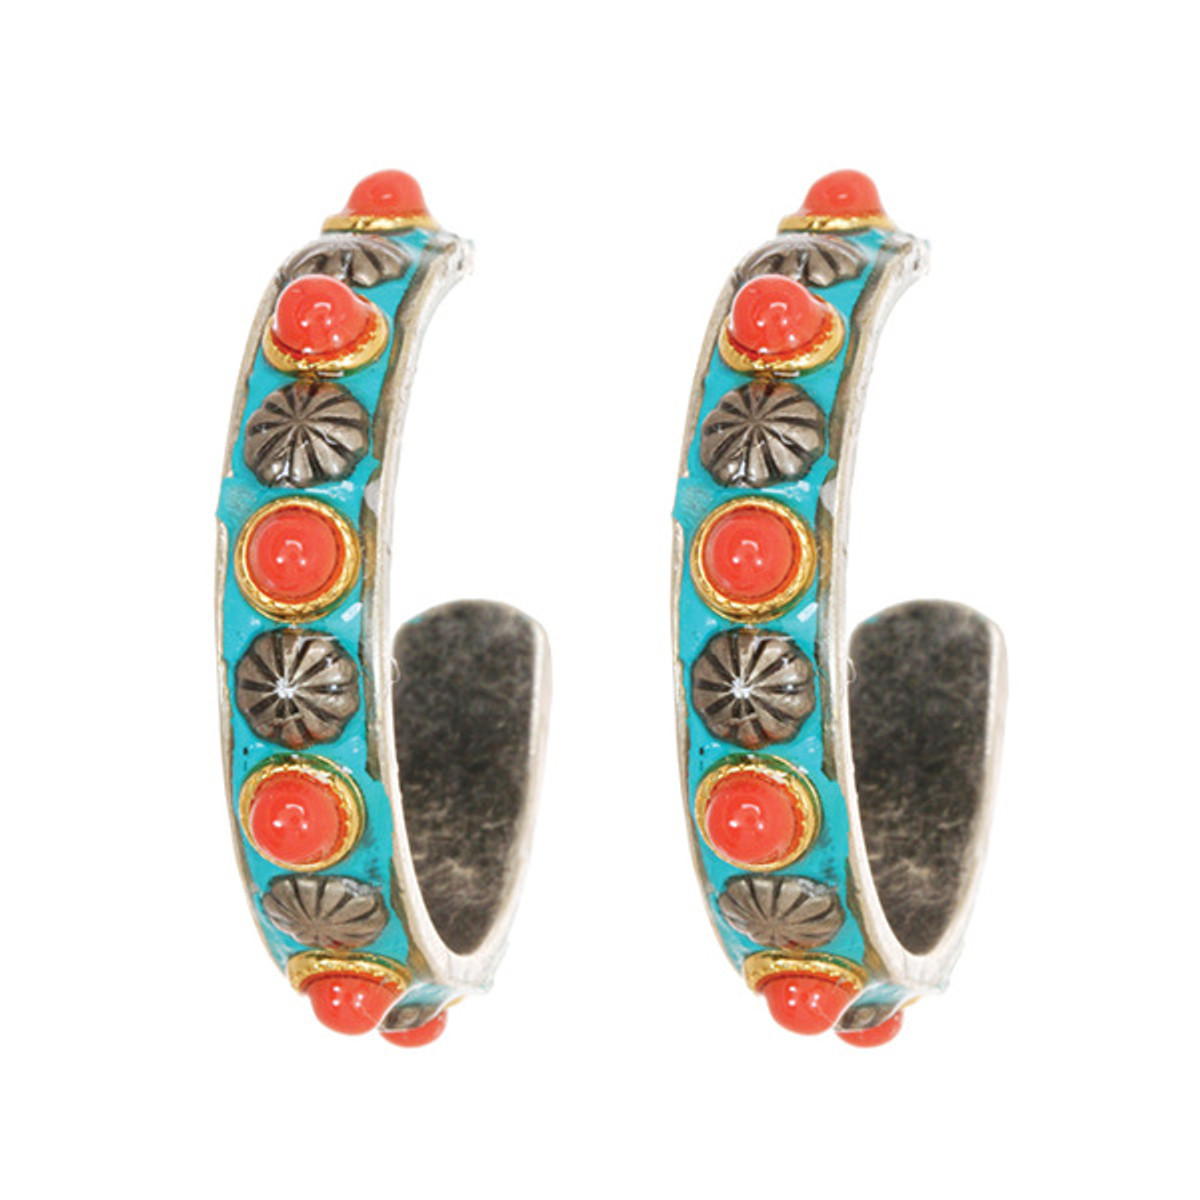 Michal Golan Jewelry Coral Sea Earrings - S7643